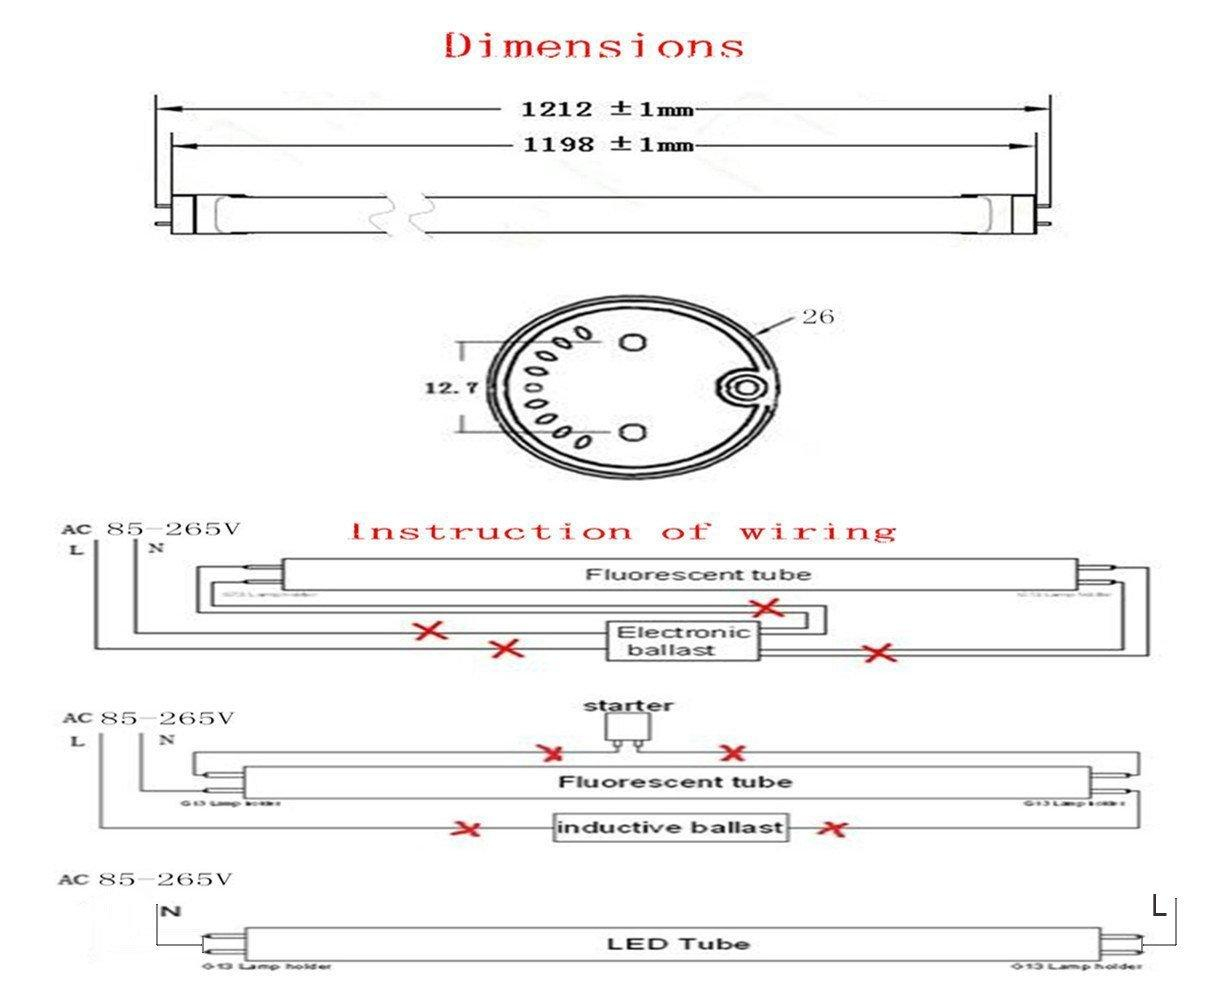 hight resolution of t8 led tube wiring diagram download the installation of t8 linear constant current led tube download wiring diagram images detail name t8 led